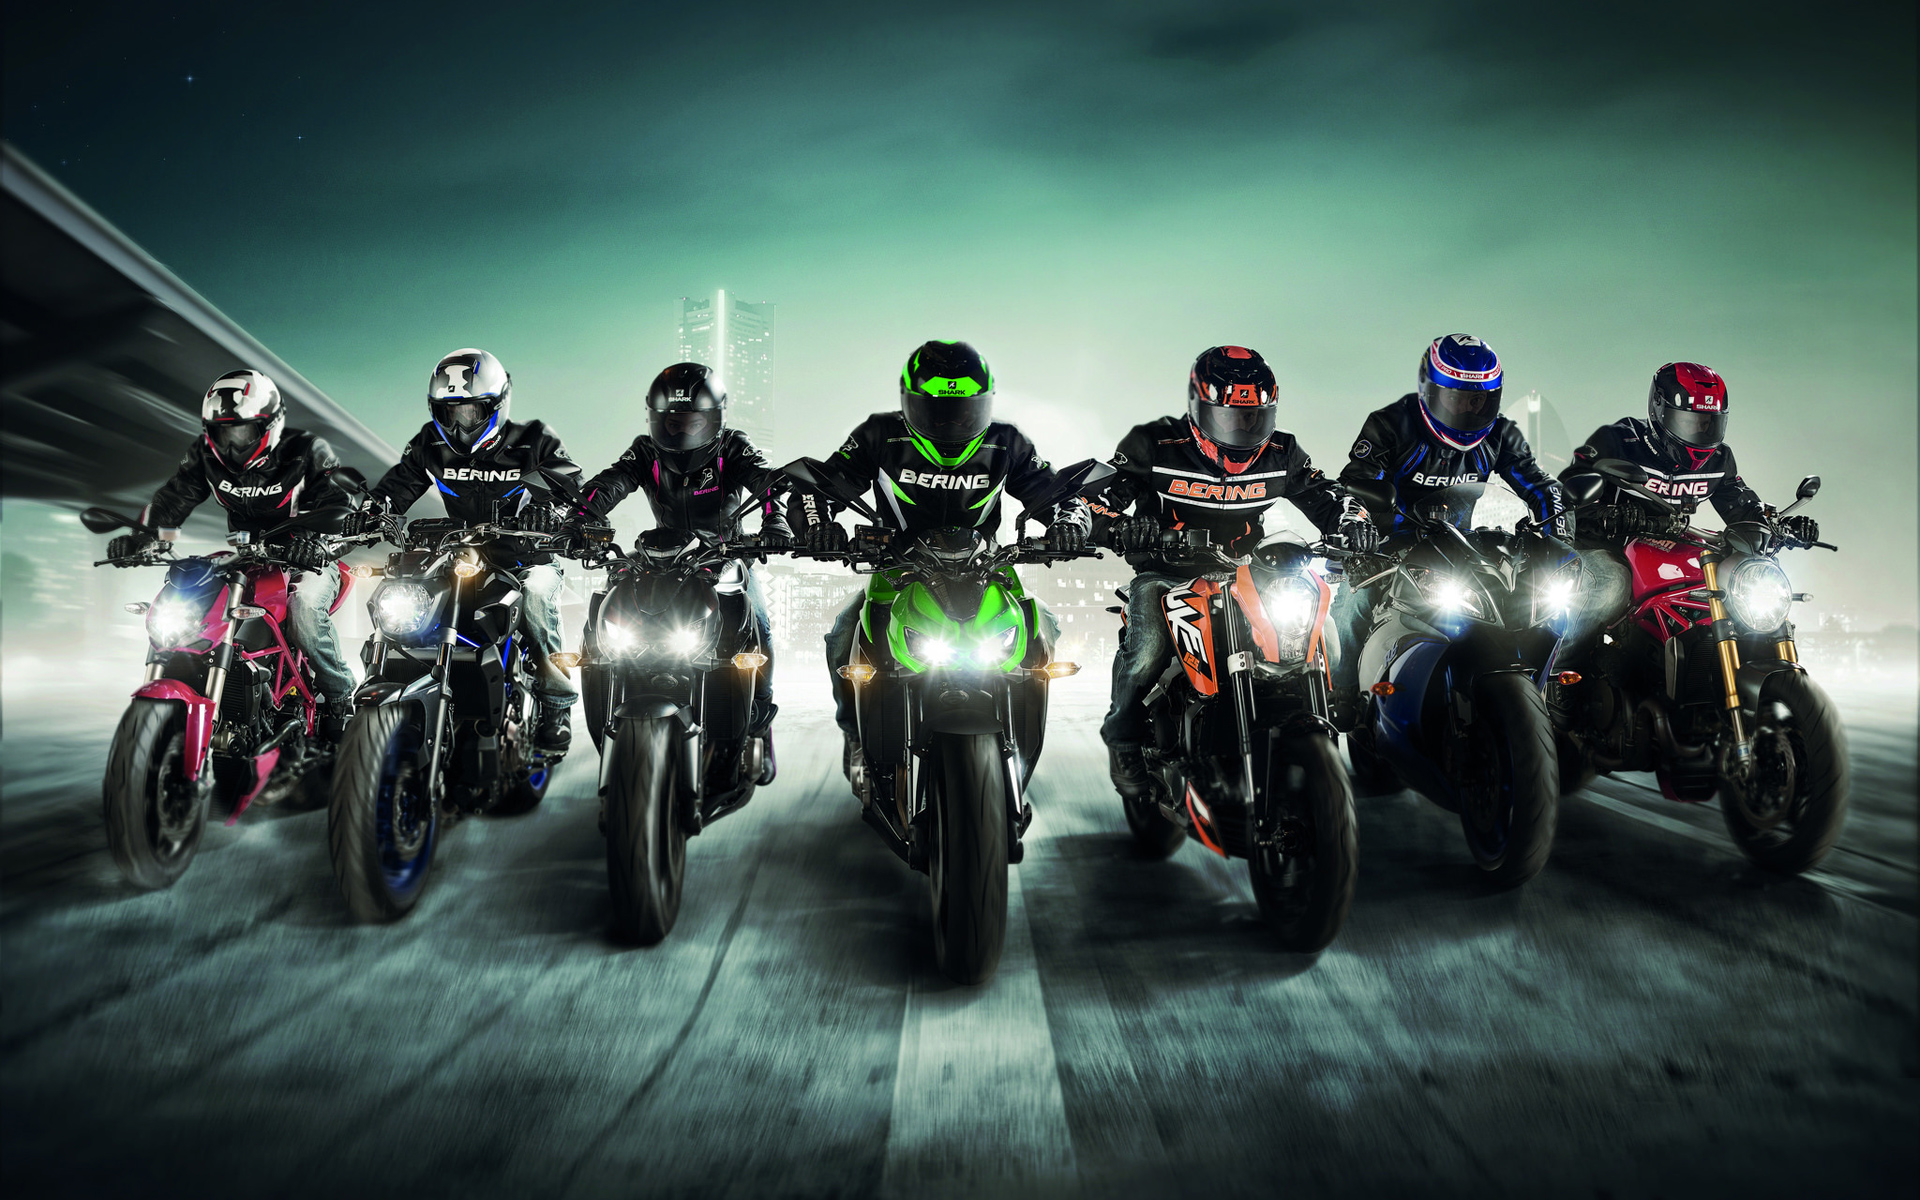 motorcycles bering 2015 sport wallpapers